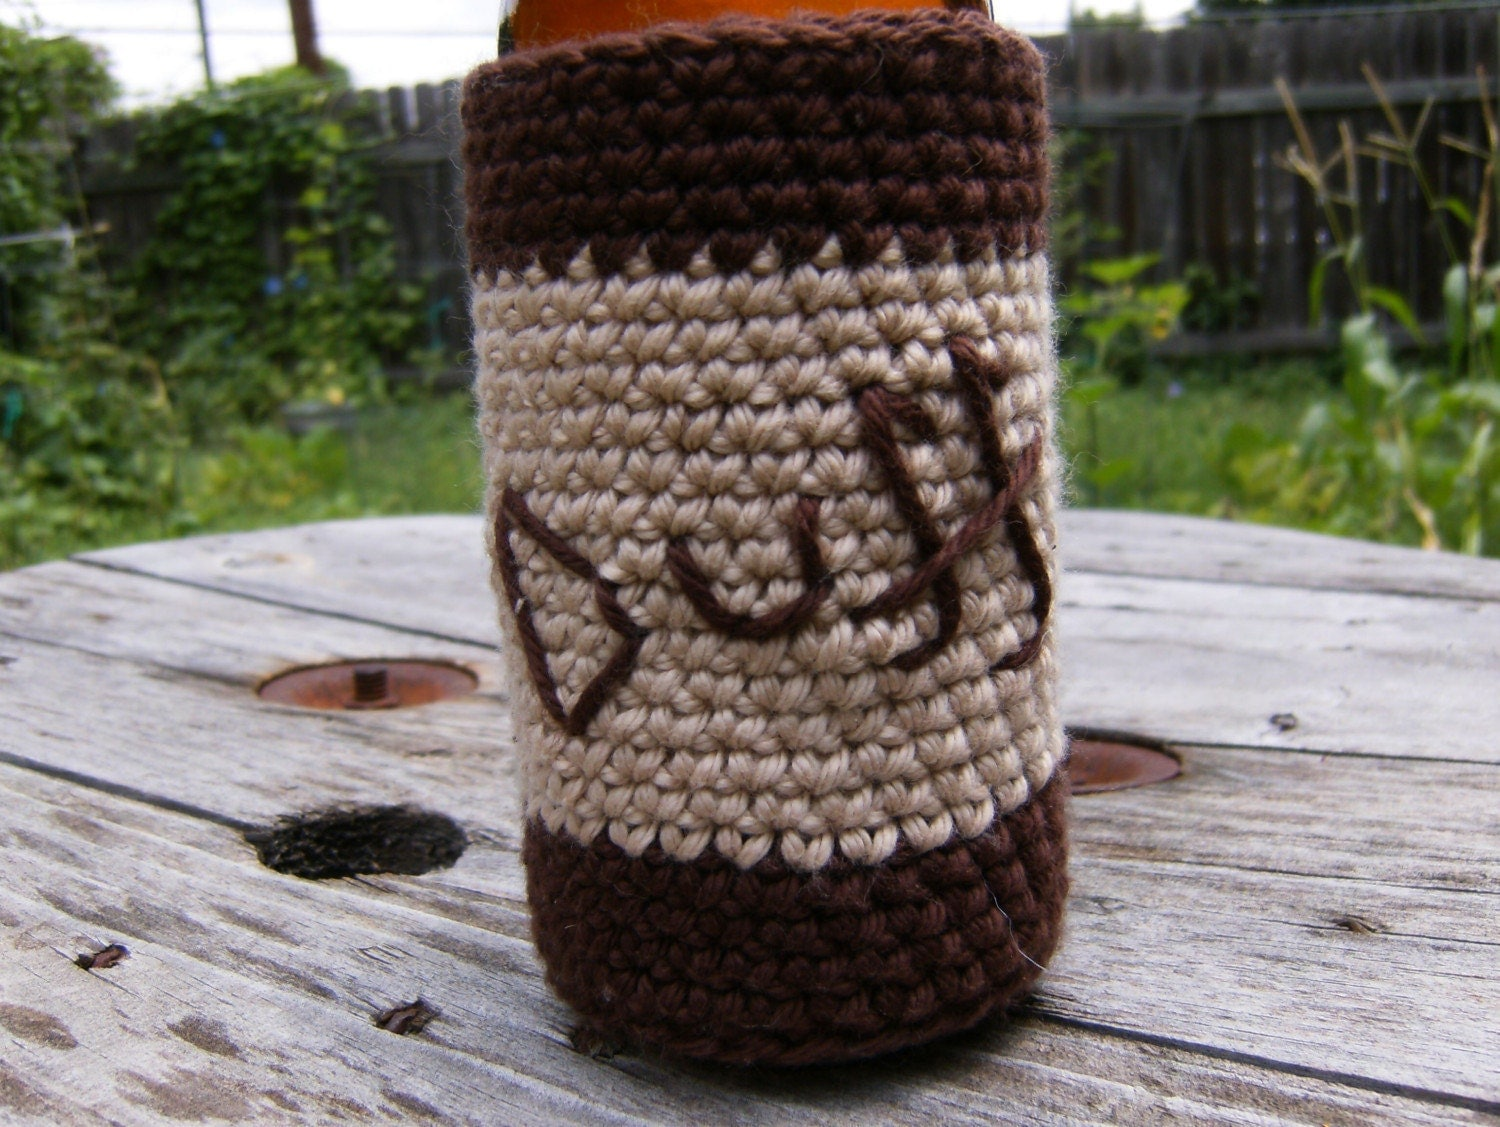 Duff Bottle Koozie - CROCHET